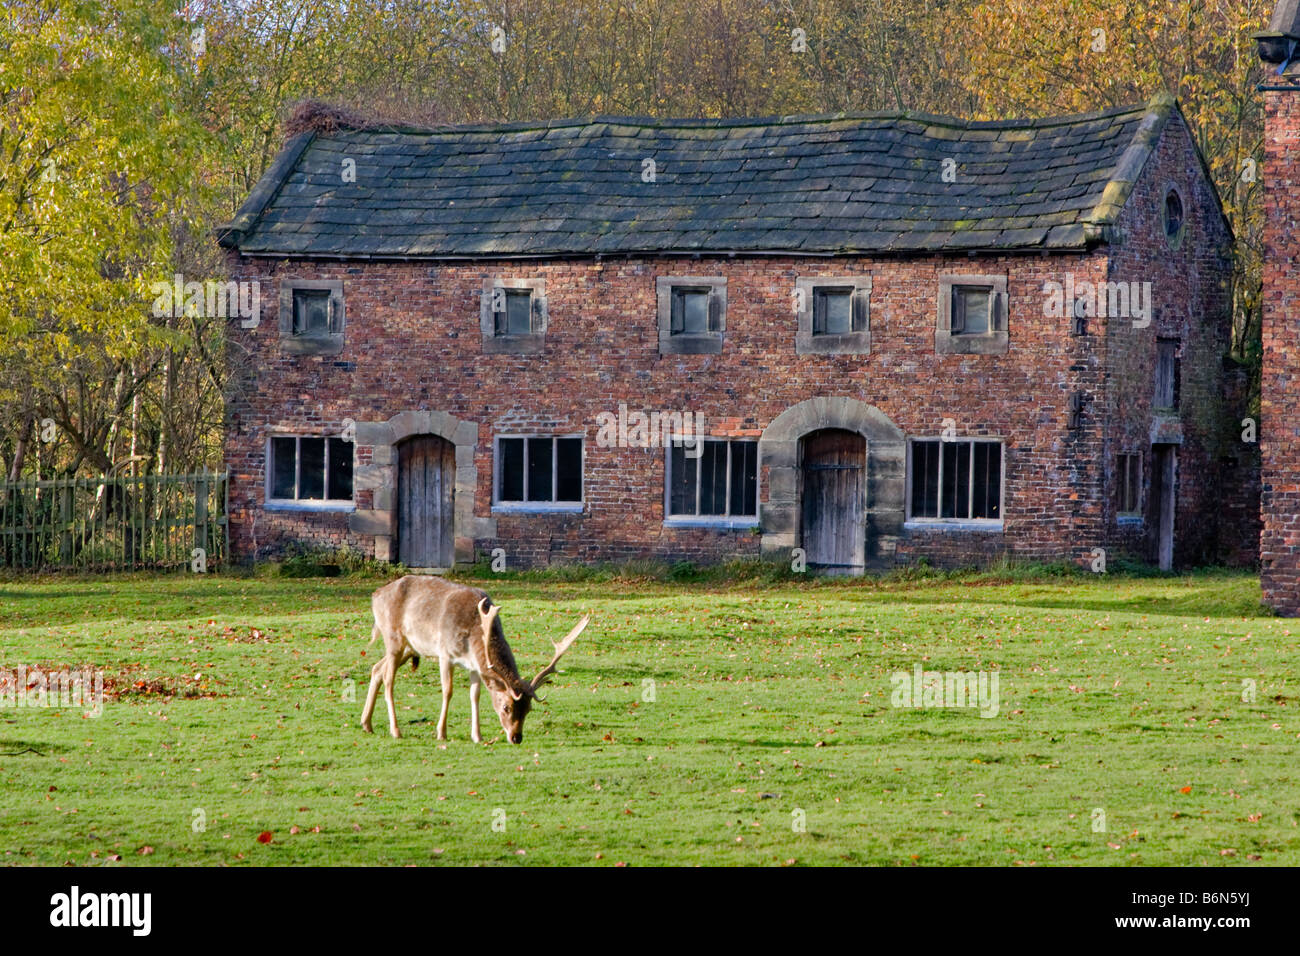 West Stables, Dunham Massey Hall and Park, Altrincham, Cheshire, built in the late 17th or early 18th century - Stock Image